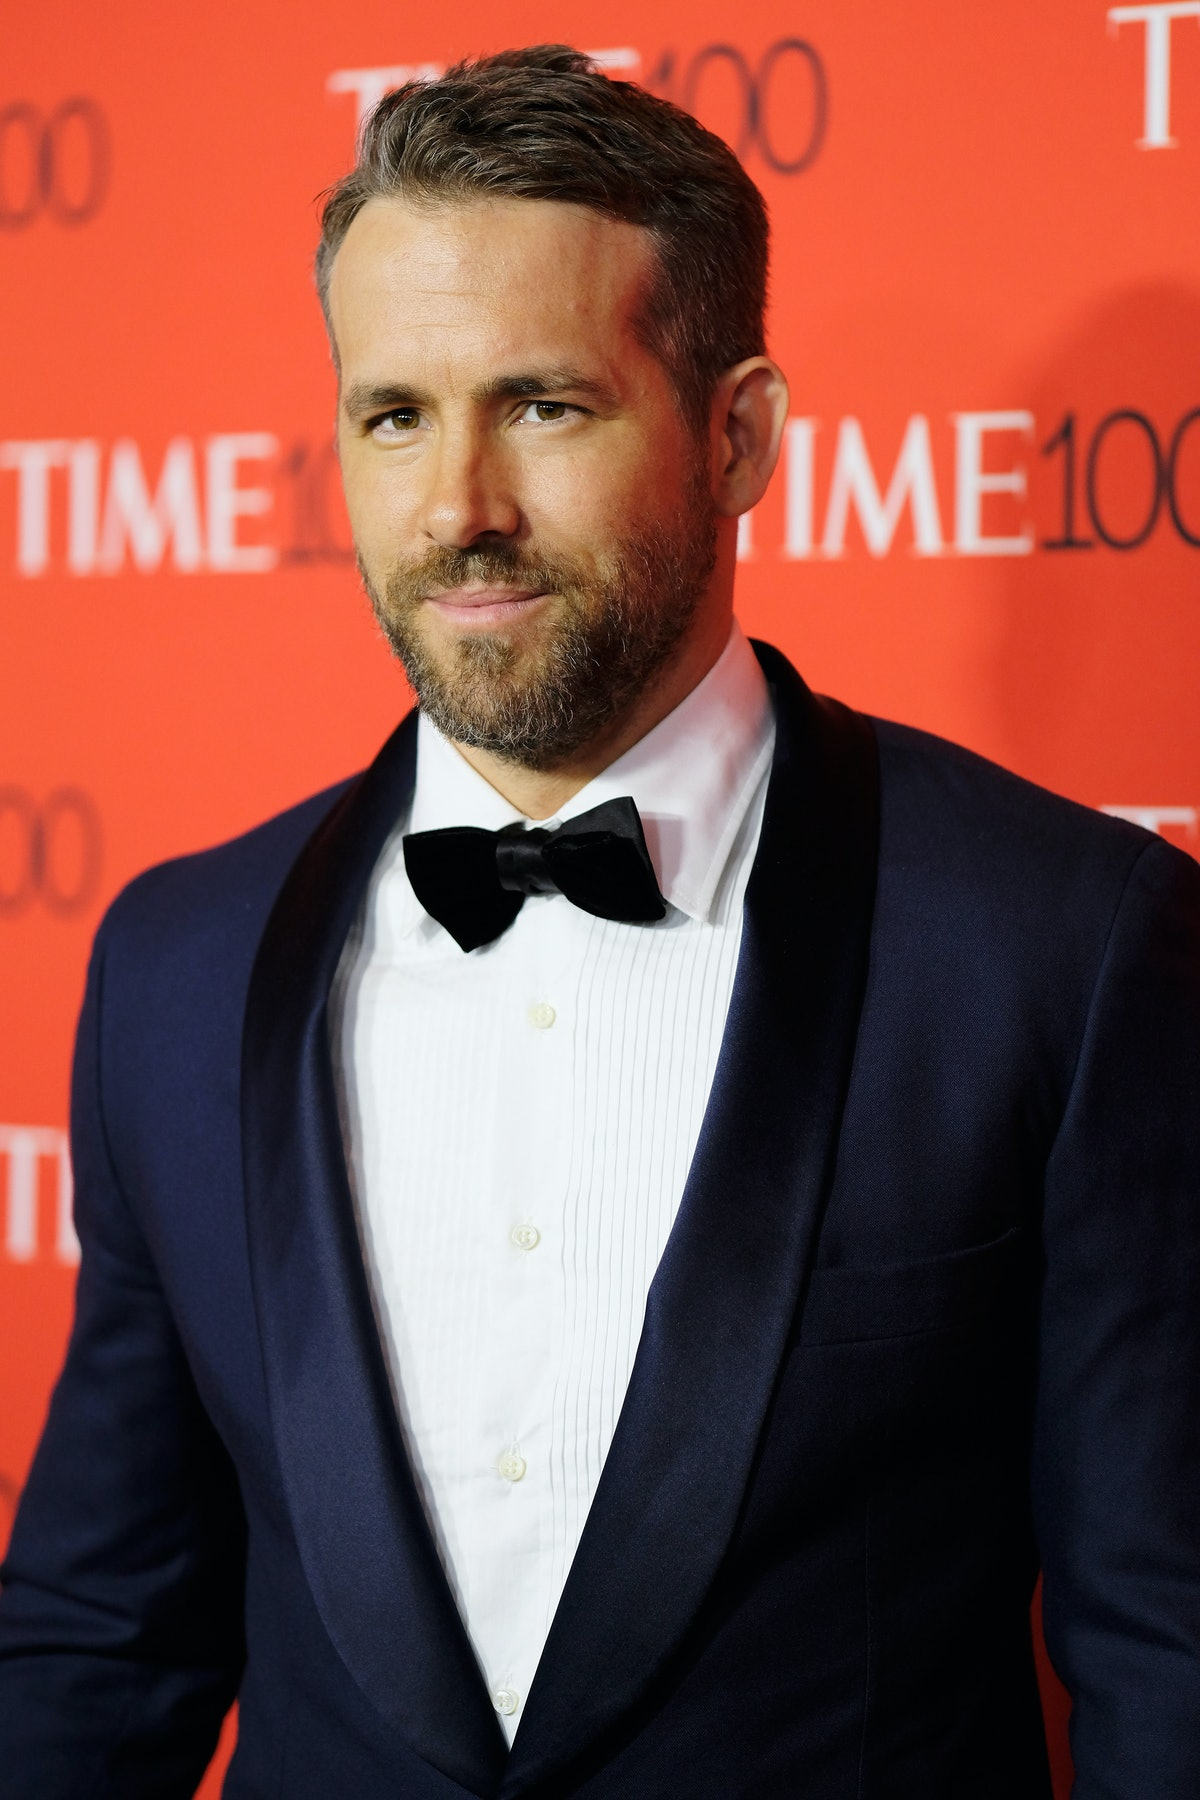 Ryan Reynolds' Struggle With Anxiety Is Such An Important Topic